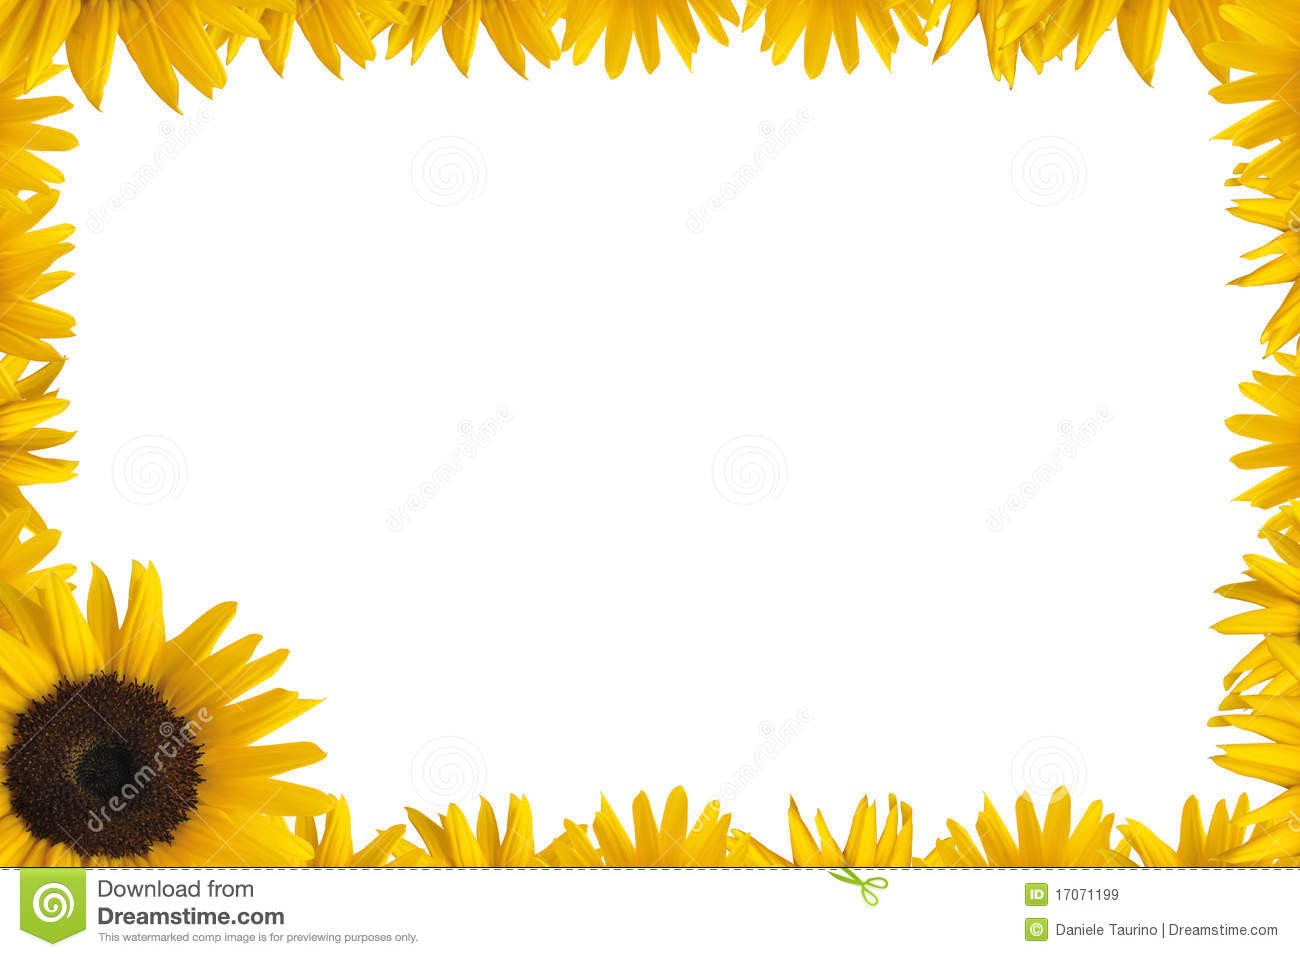 Sunflower frame